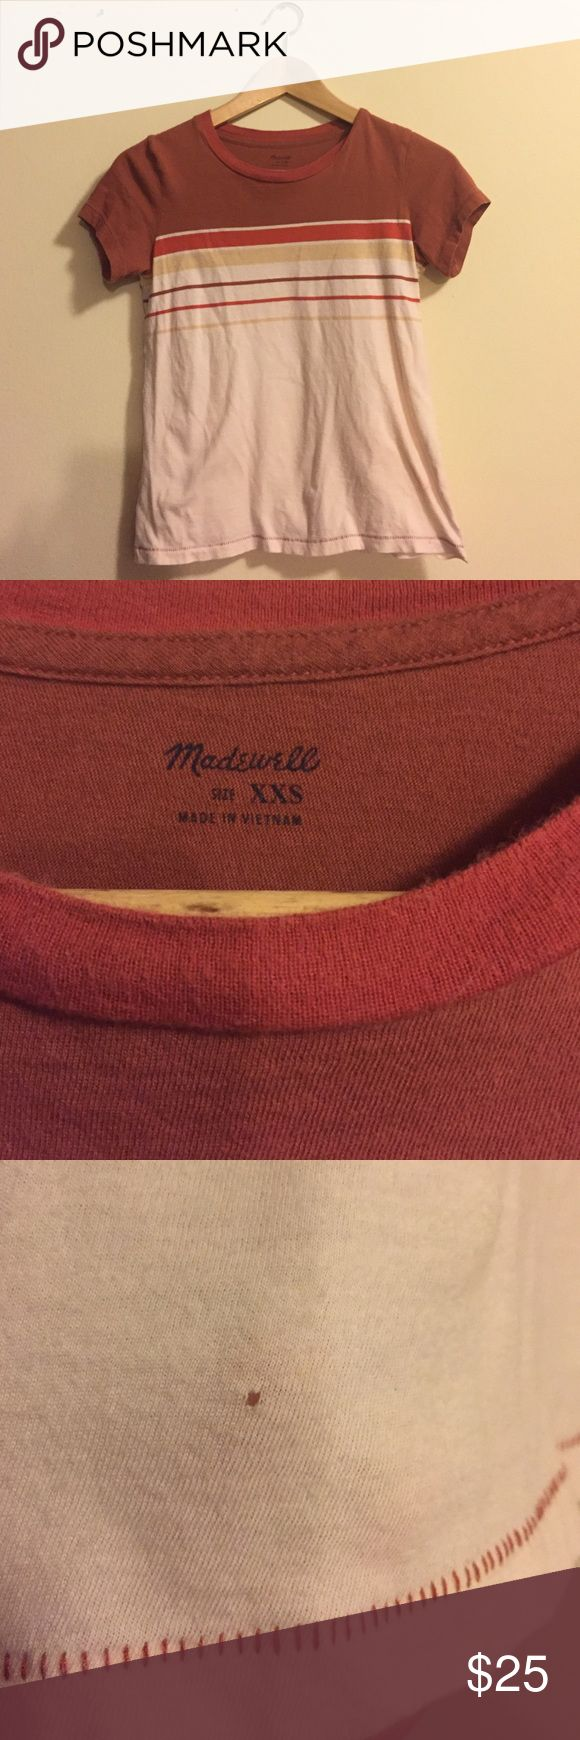 Madewell Striped Radio Tee Good condition. Tiny hole at front hem pictured. Super cute! Madewell Tops Tees - Short Sleeve